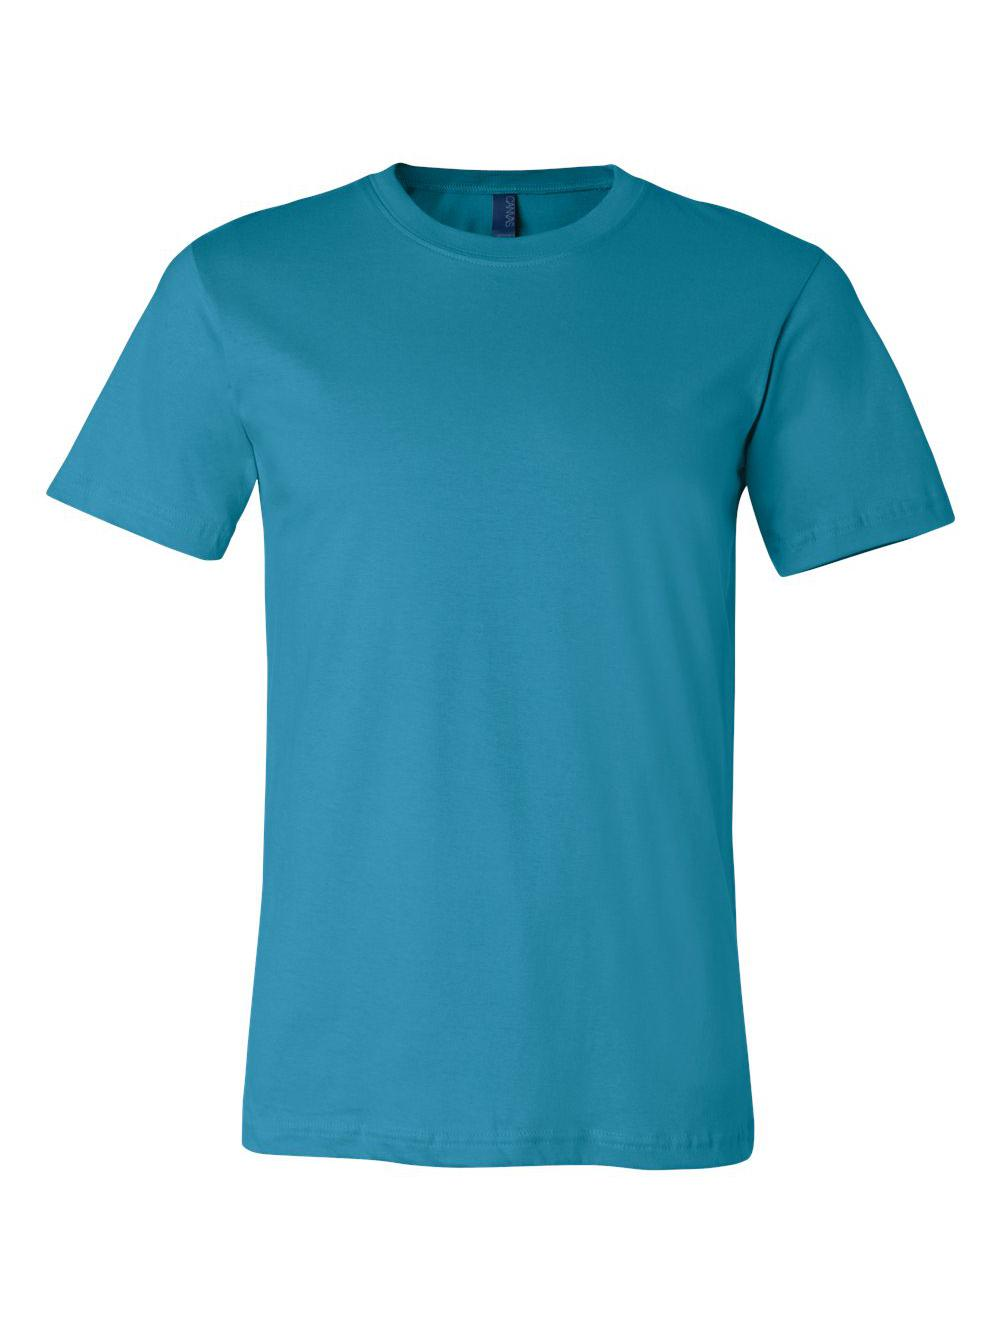 Bella-Canvas-Unisex-Short-Sleeve-Jersey-Tee-3001 thumbnail 3